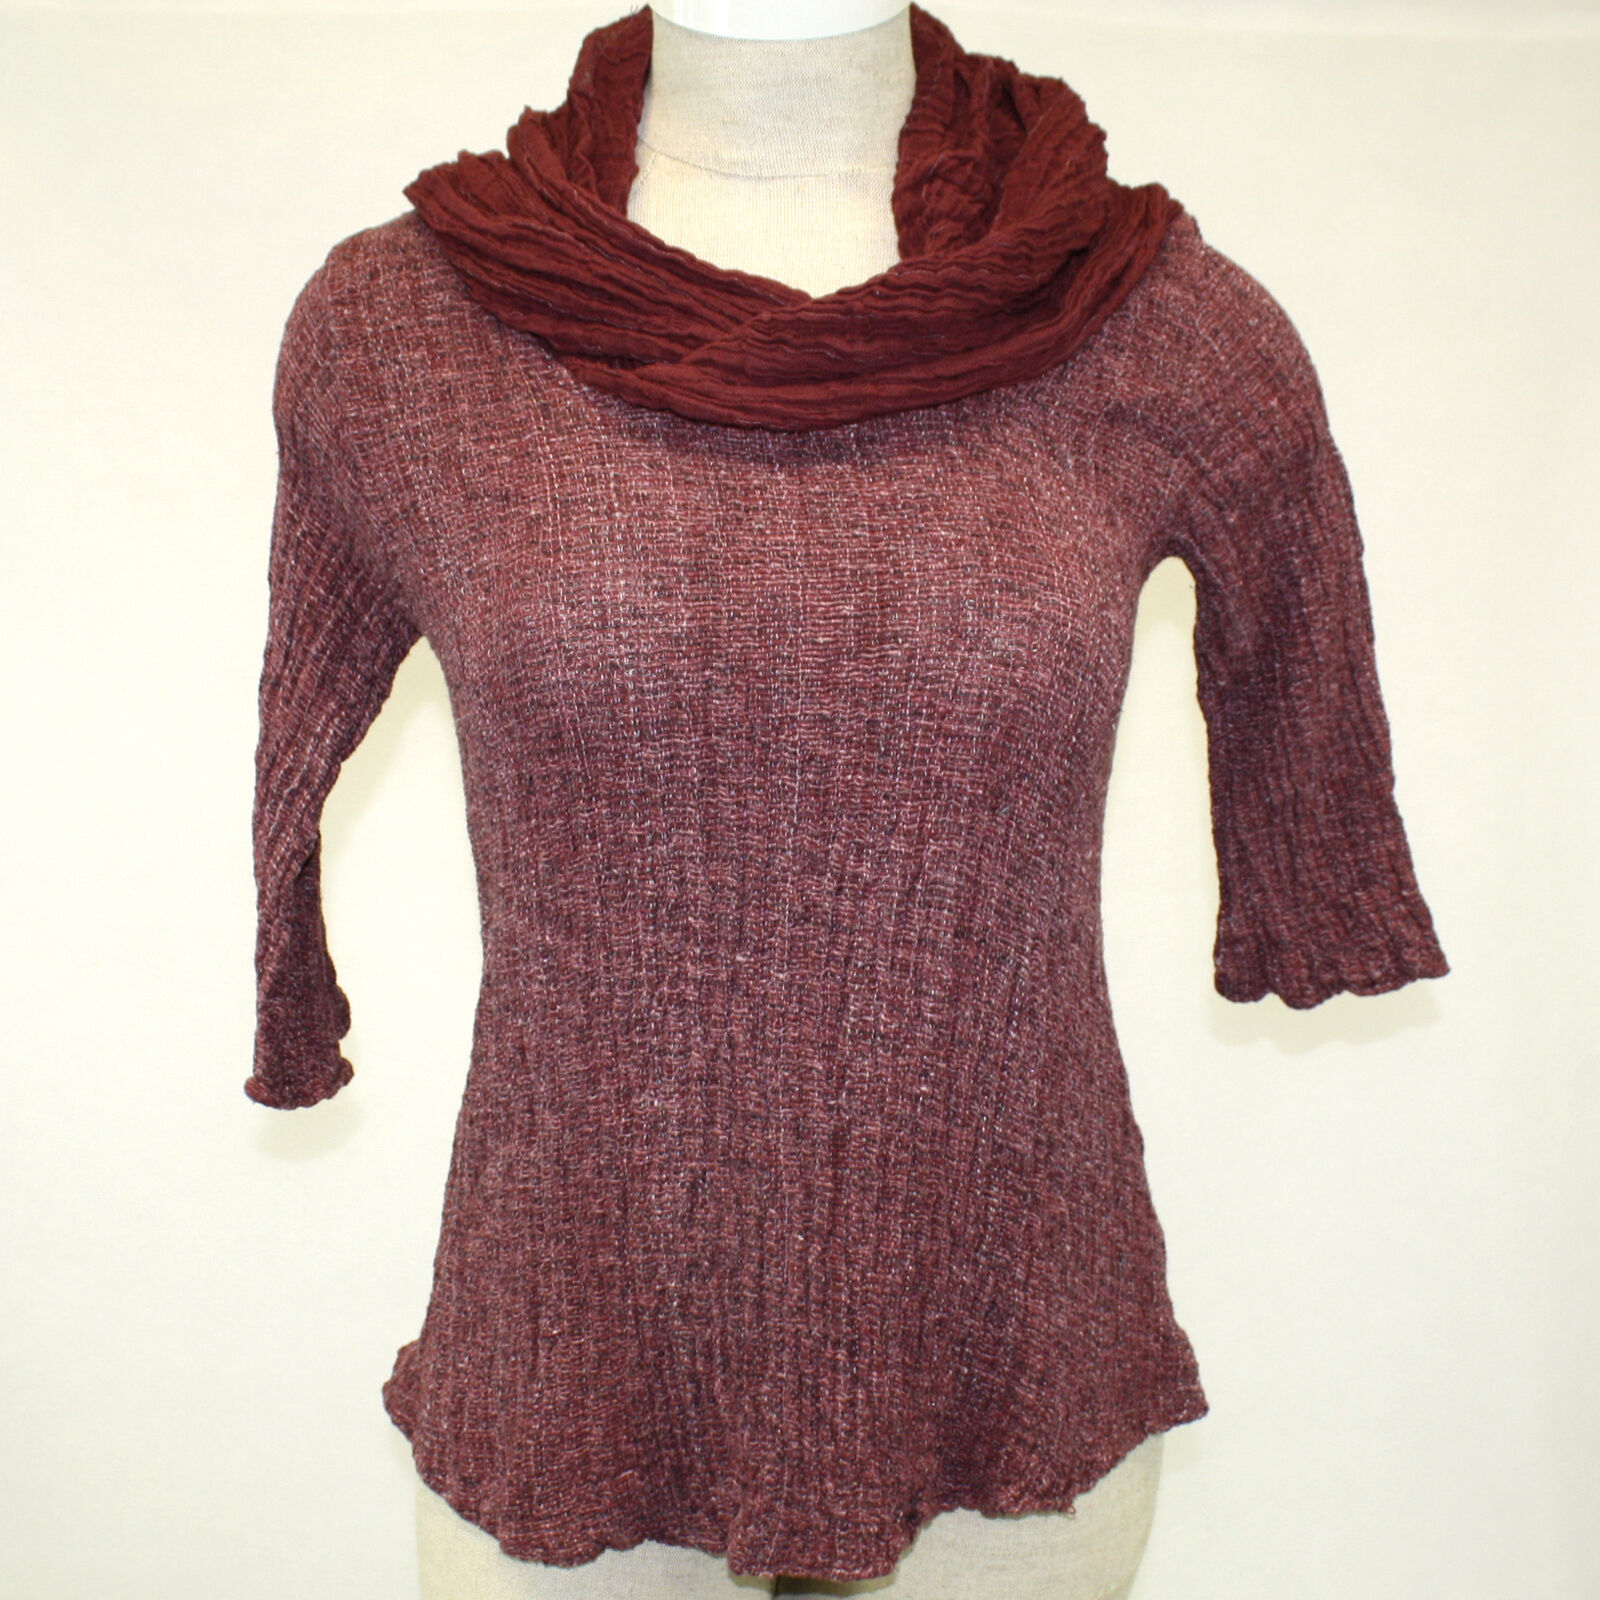 NWT Kai Moon Handmade Cowl Knit Top Maroon Cotton Bamboo Blouse 2X Made in USA